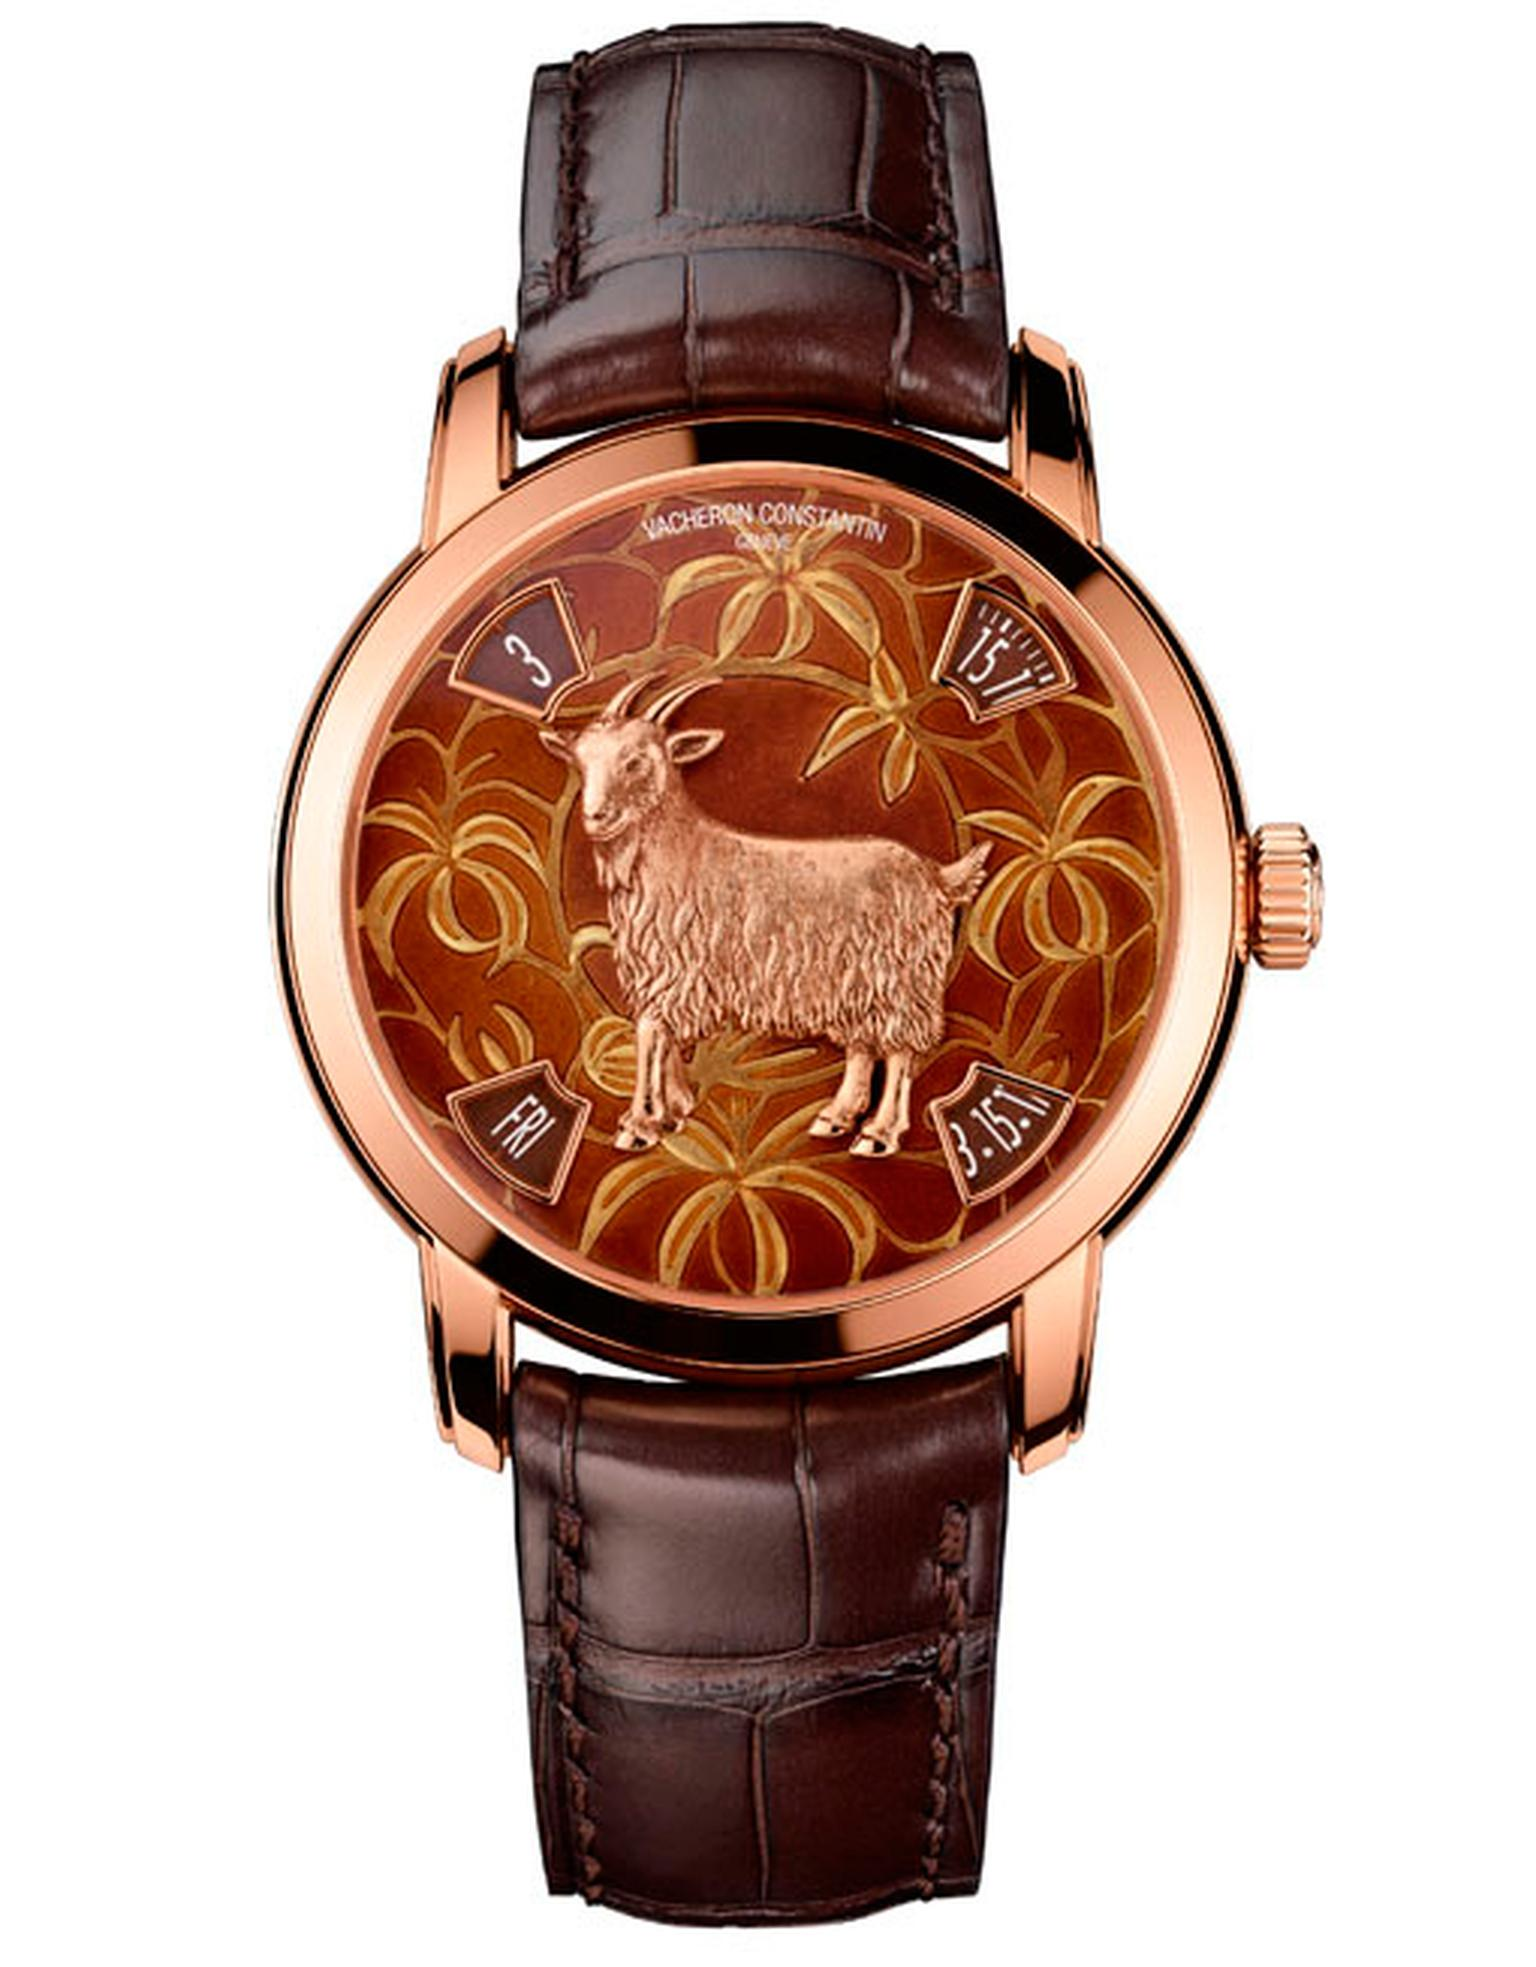 Vacheron Constantin red gold model depicts a goat with his long fleece lovingly etched in the metal surrounded by an Asian leaf motif, which is embellished with grand feu enamelling. Both models are limited to 12 pieces each.